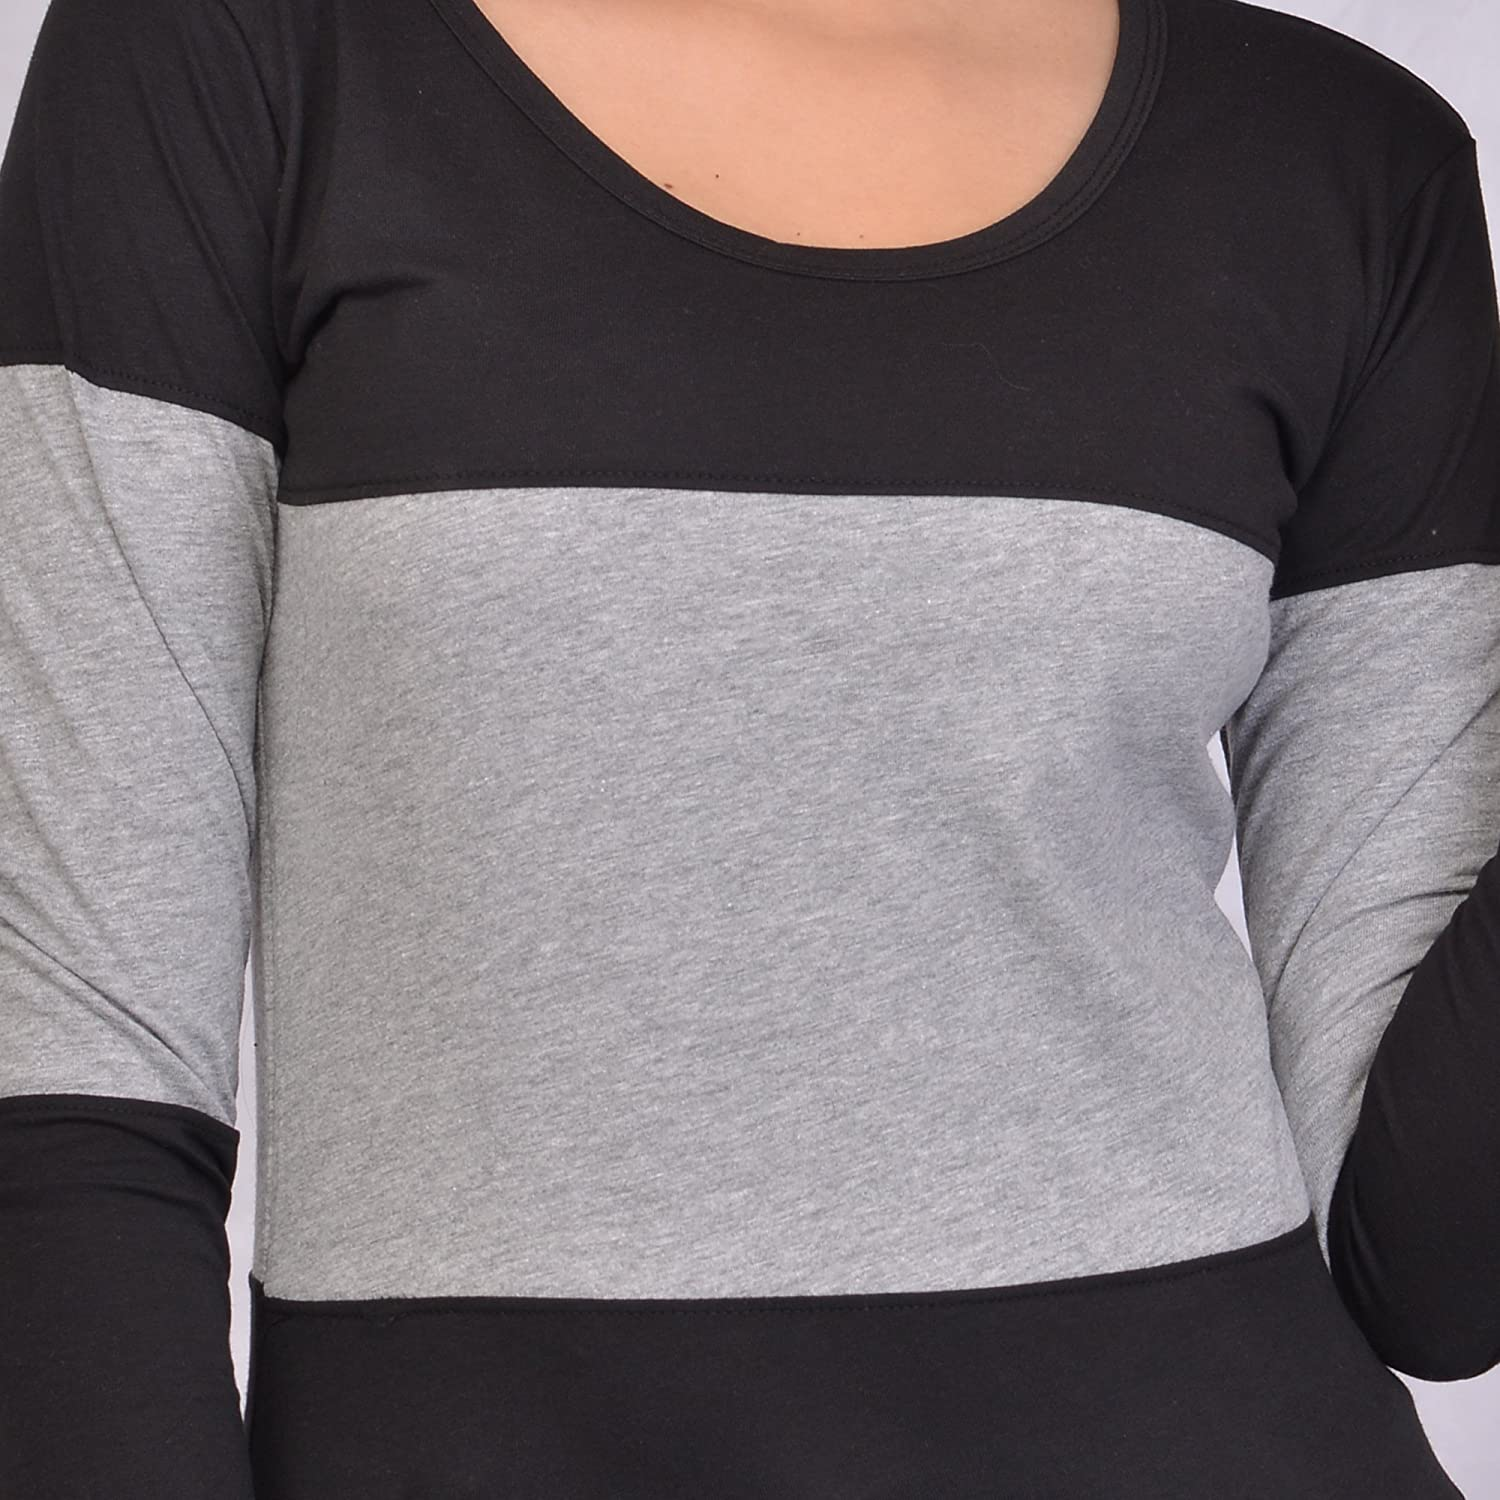 3b5f086213d Fubura Womens Cotton Casual T-Shirts Round Neck Sports Trim Full Sleeve  with Black Grey Colour  Amazon.in  Clothing   Accessories